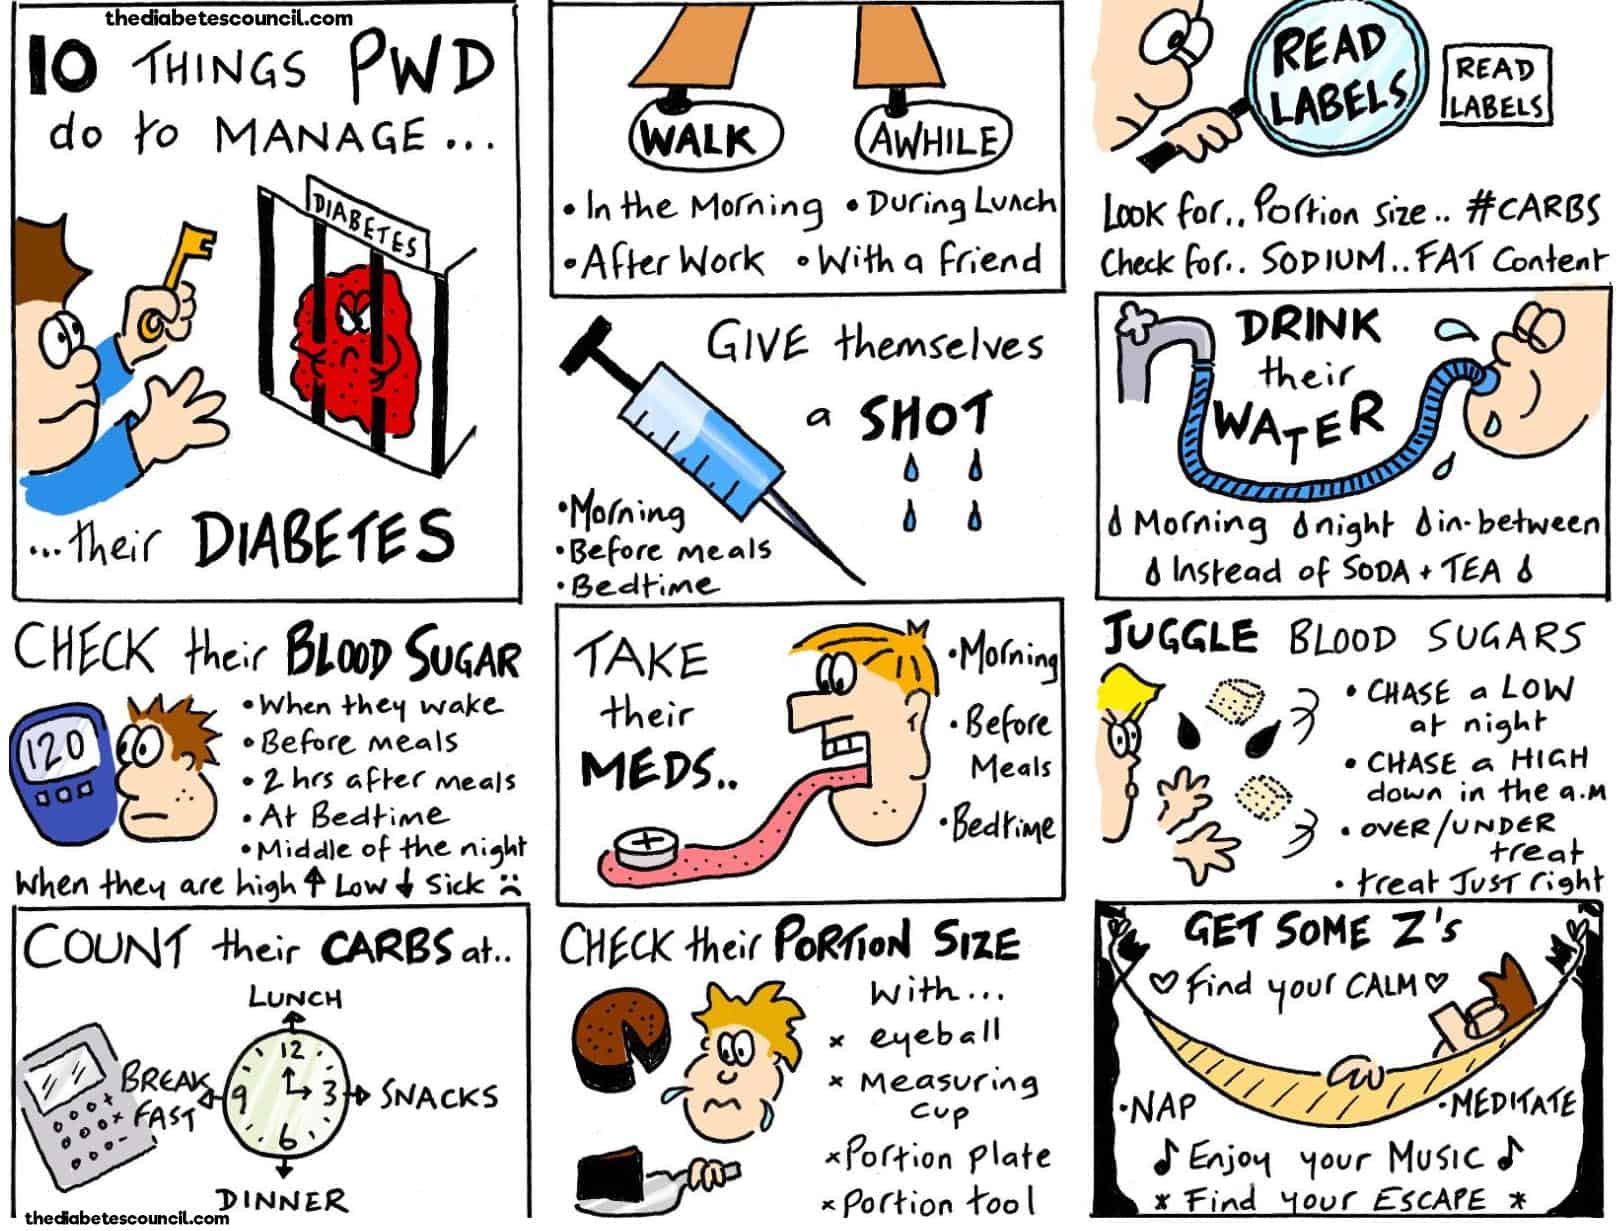 top 10 things people with diabetes do to better manage their diabetes